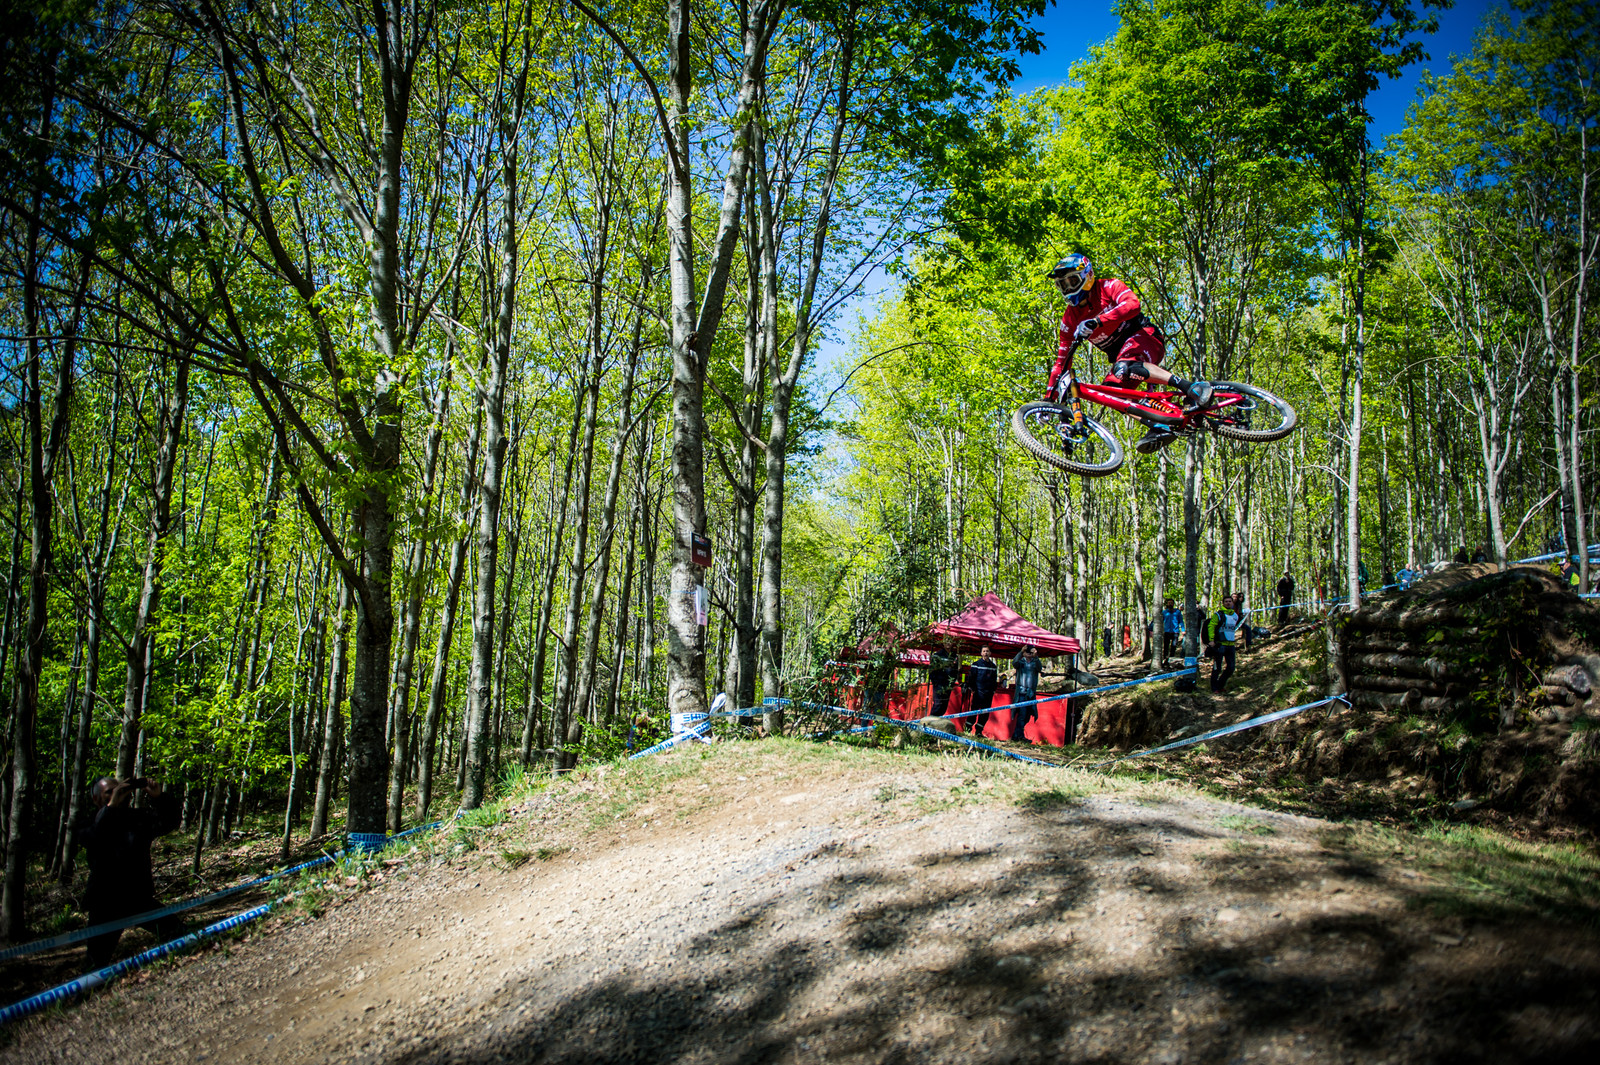 Gee Atherton, fastest in timed training.